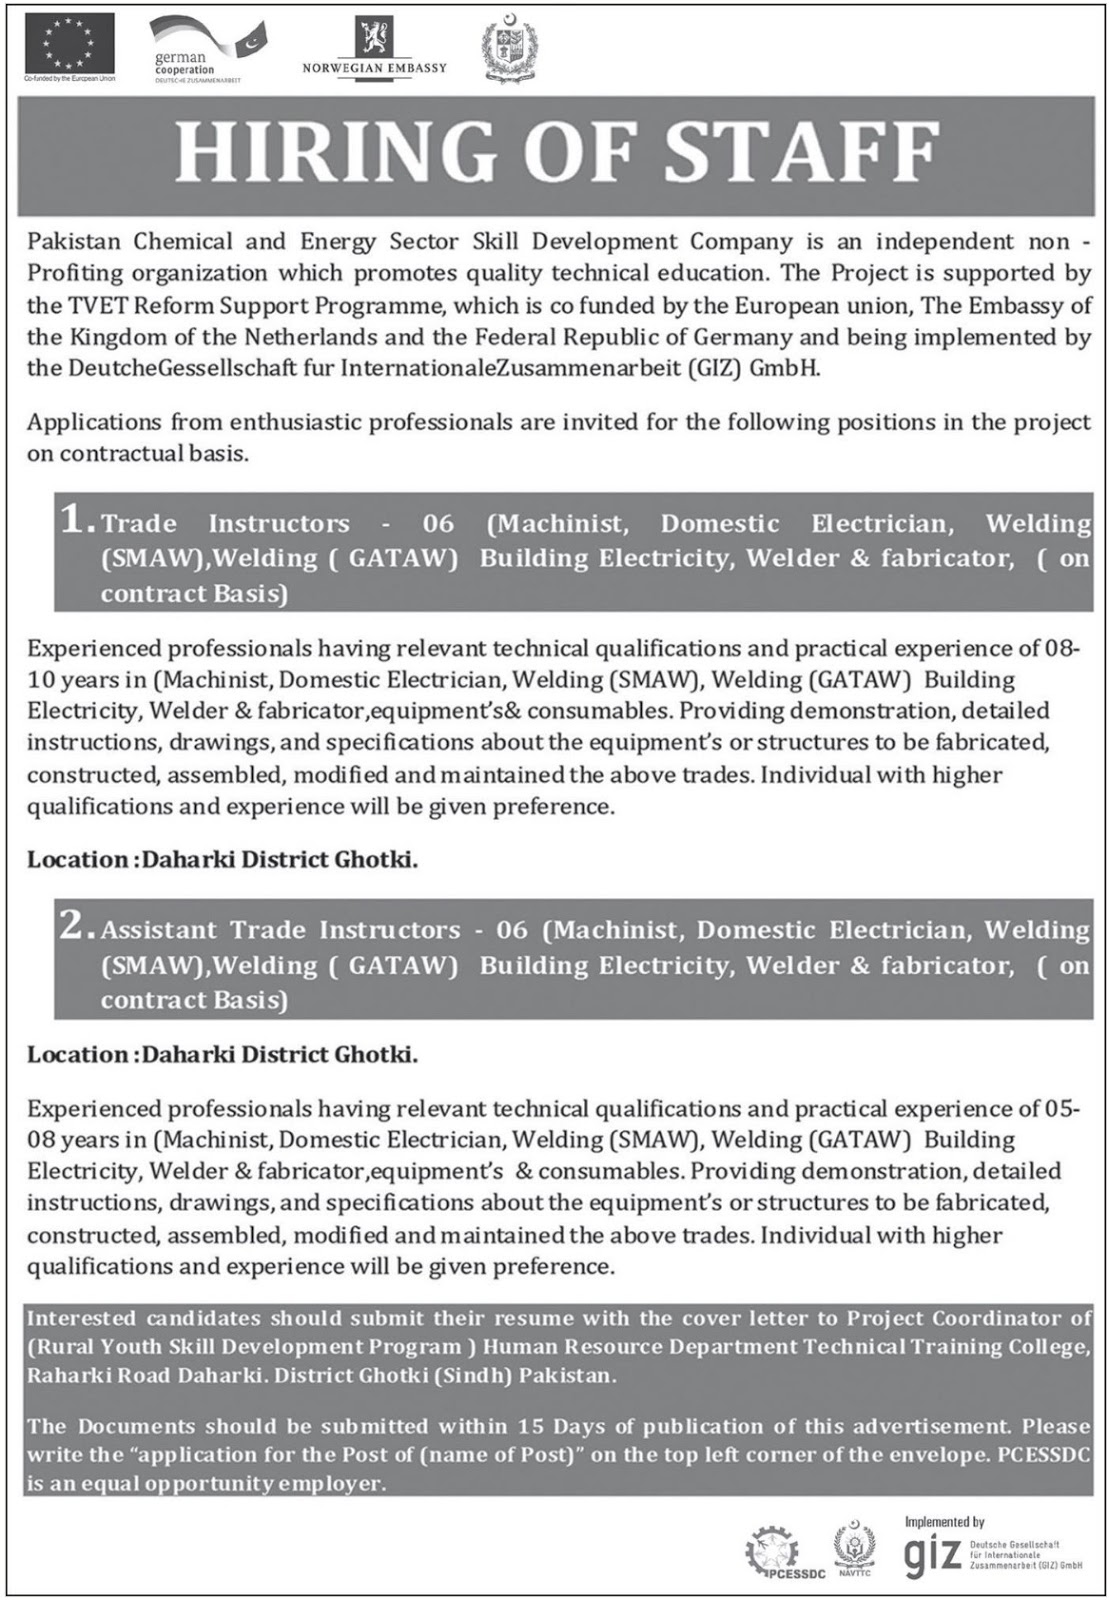 Pakistan Chemical & Energy Sector Skill Development Company Jobs 2019